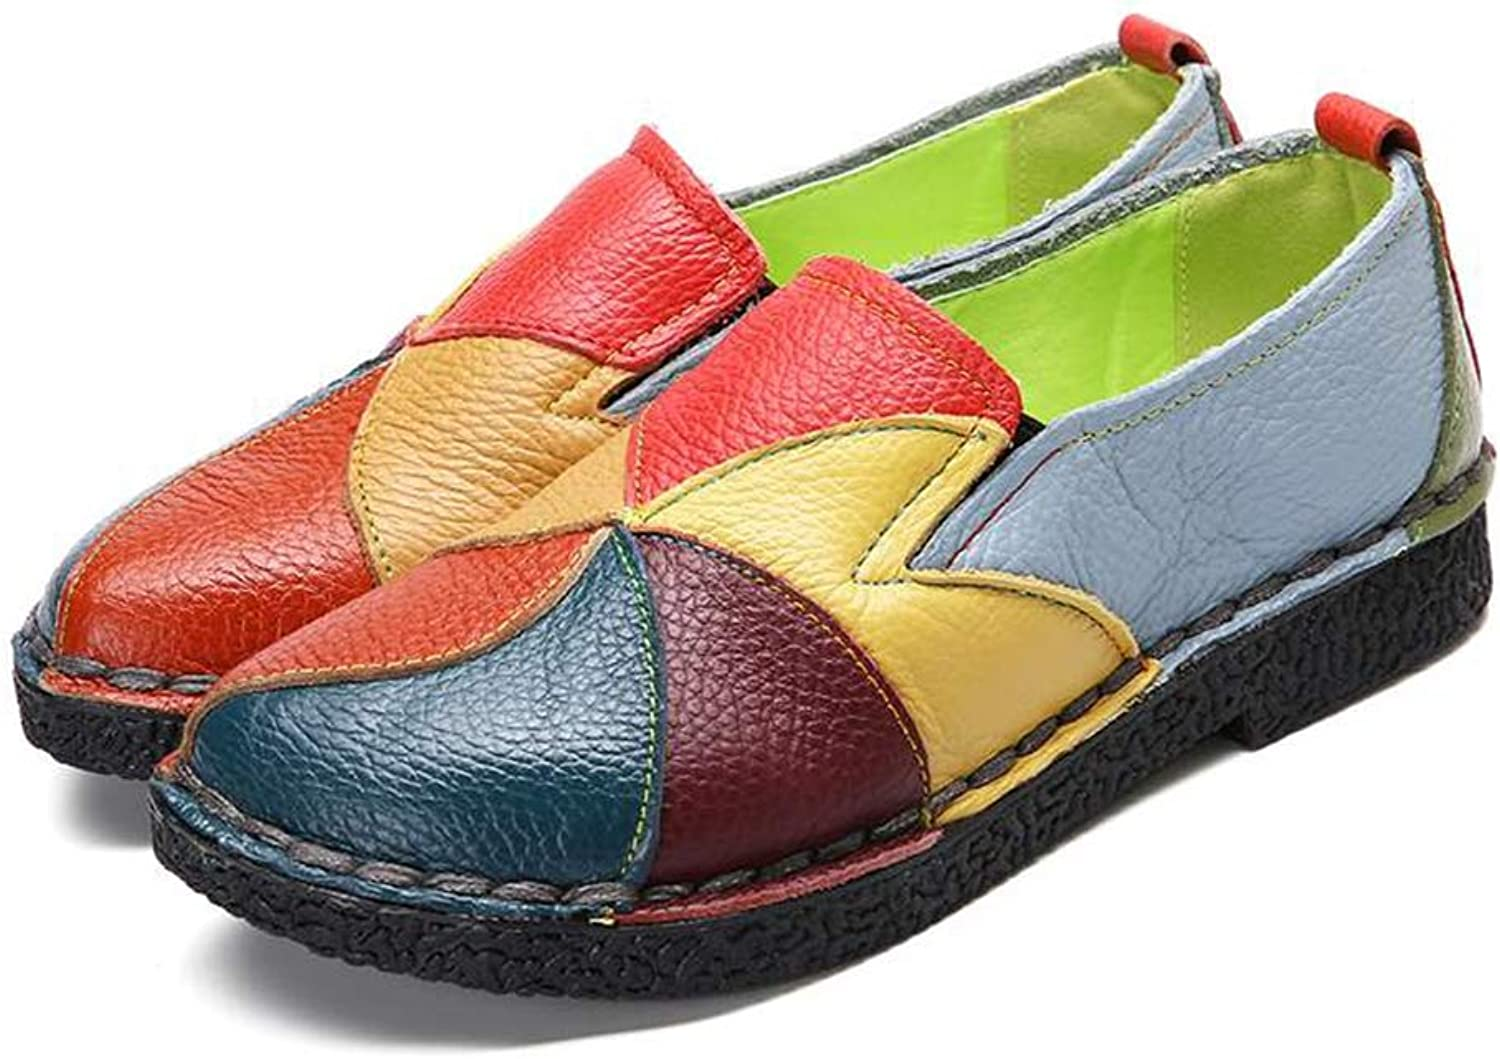 T-JULY Vintage Genuine Leather Splicing Loafers Retro Soft Sole Non-Slip Flats shoes Women Spring Summer Casual Women Flat shoes